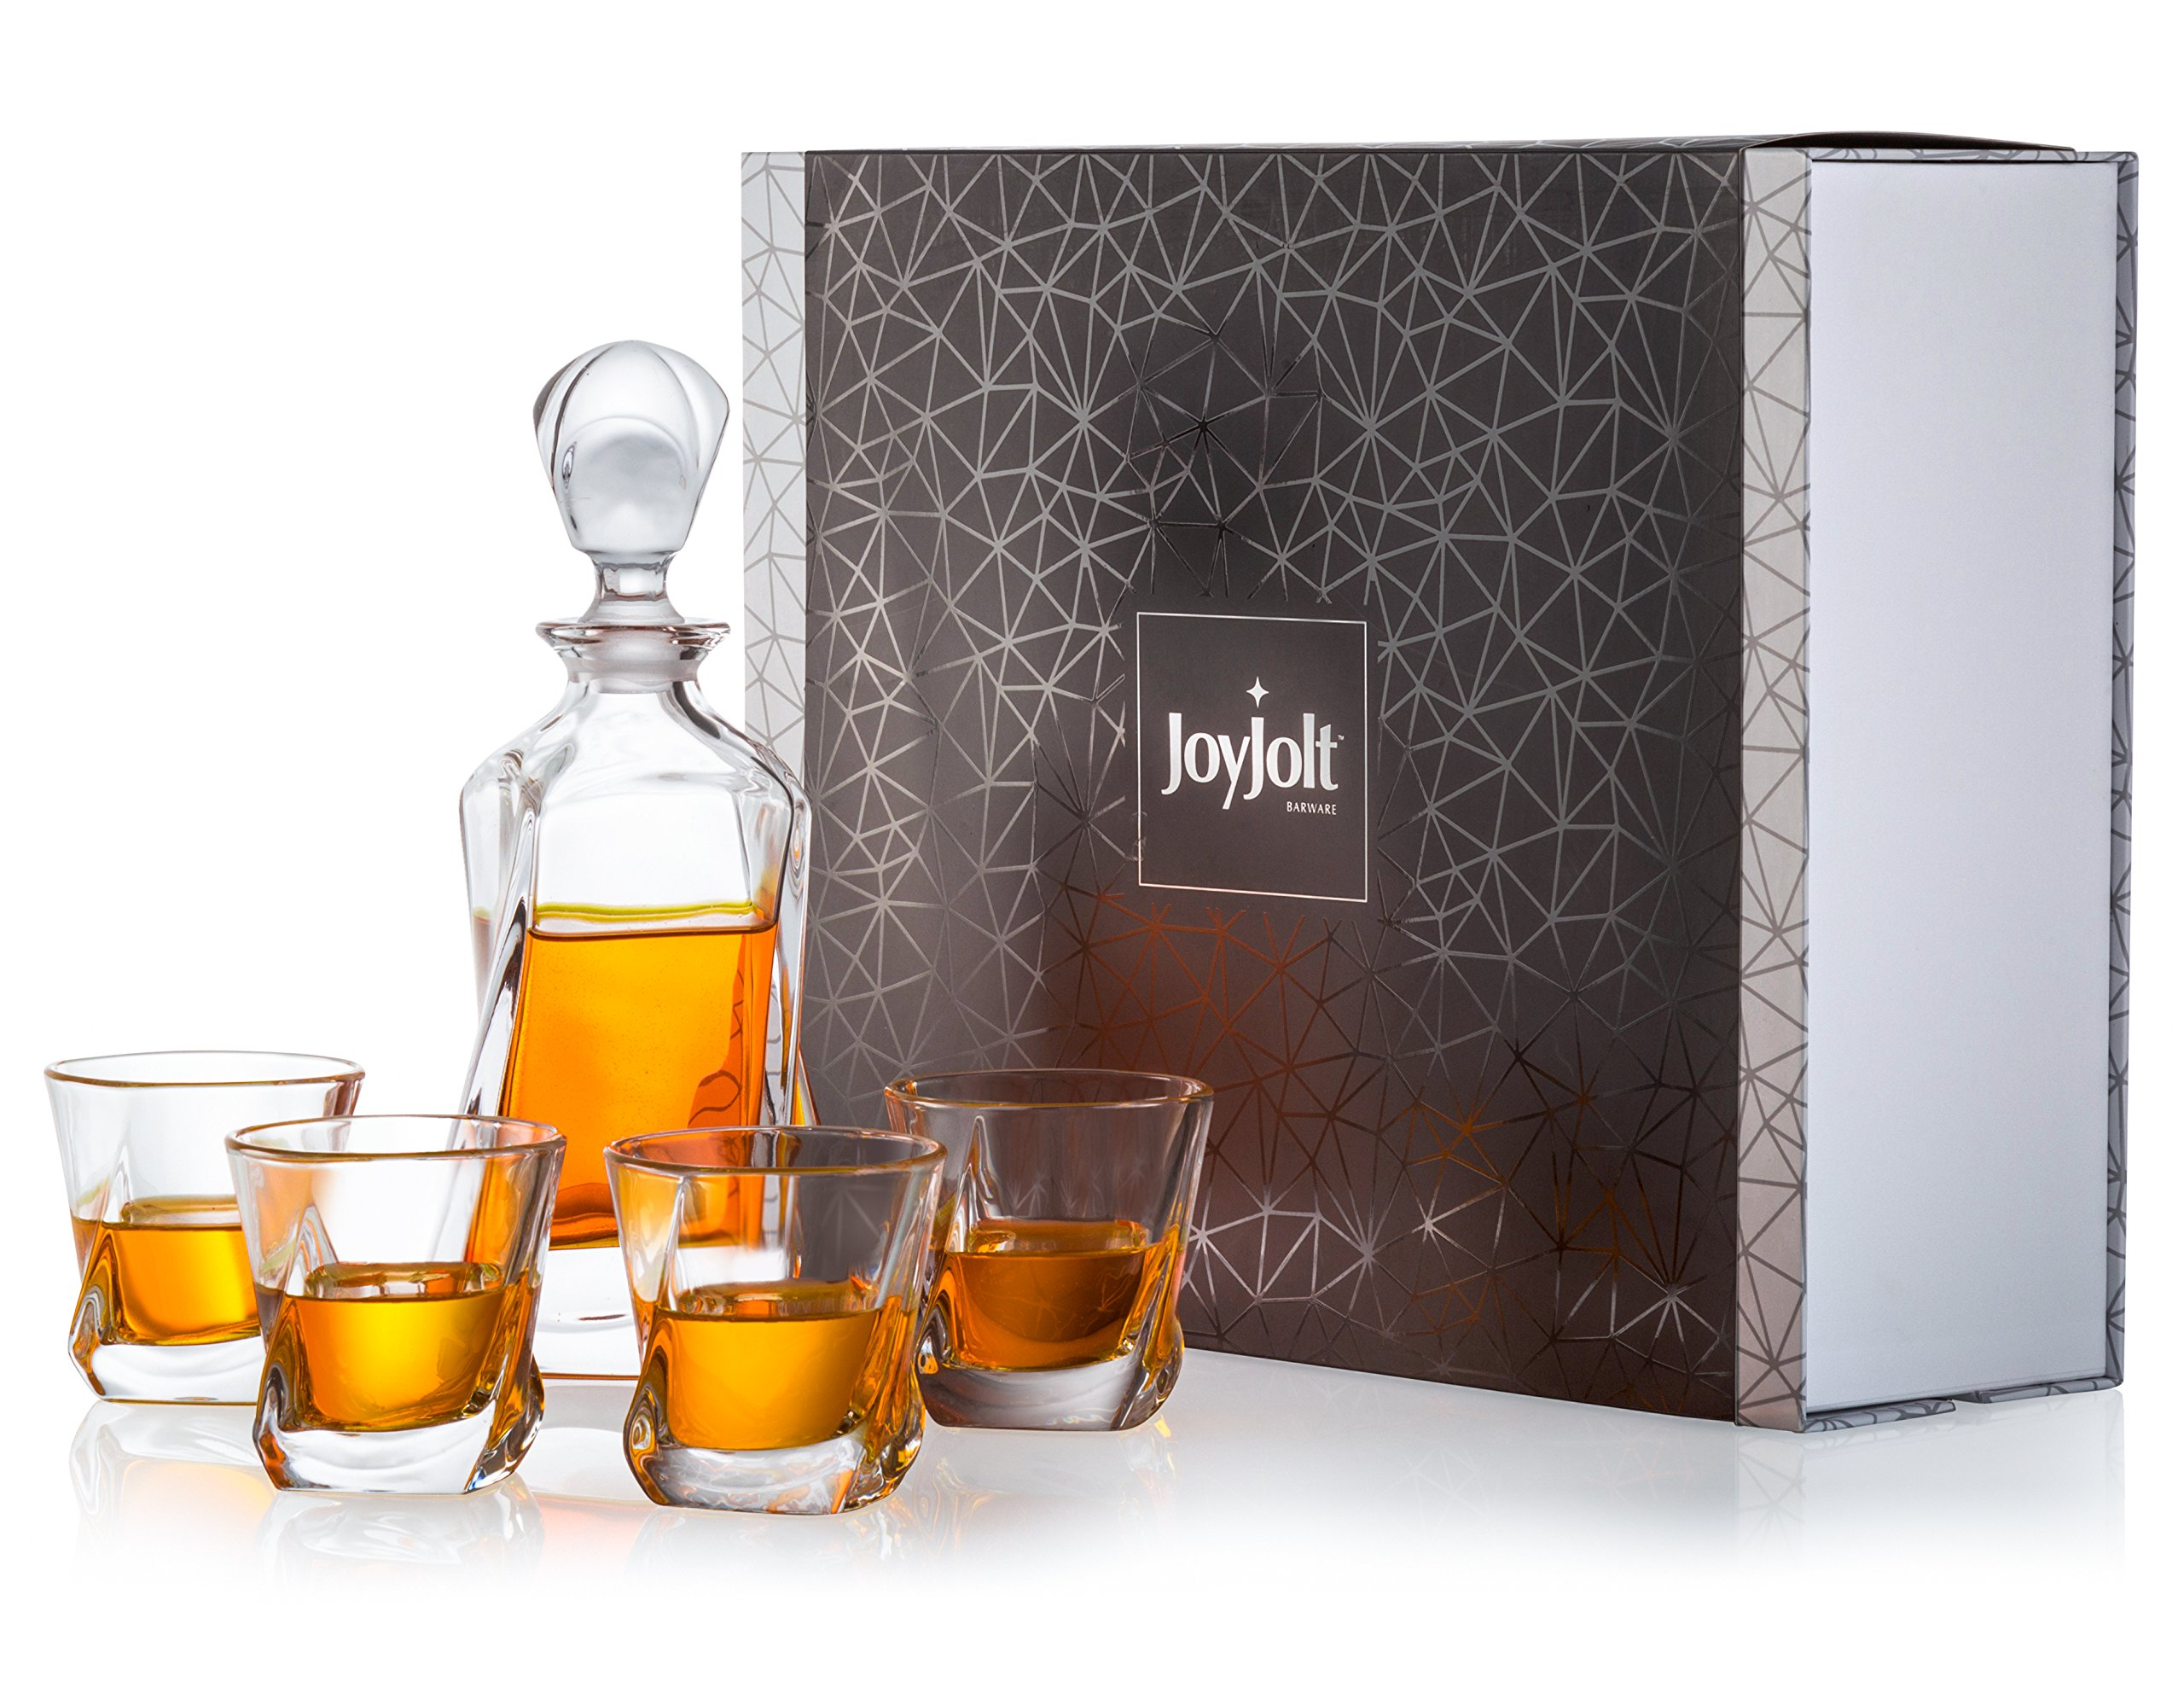 JoyJolt Aurora 5-Piece Crystal Whiskey Decanter Set,100% Lead-Free Crystal Bar Set, Crystal Decanter Set Comes With A Scotch Decanter-25.3 Ounces And A Set Of 4 Old Fashioned Whiskey Glasses-8.10oz